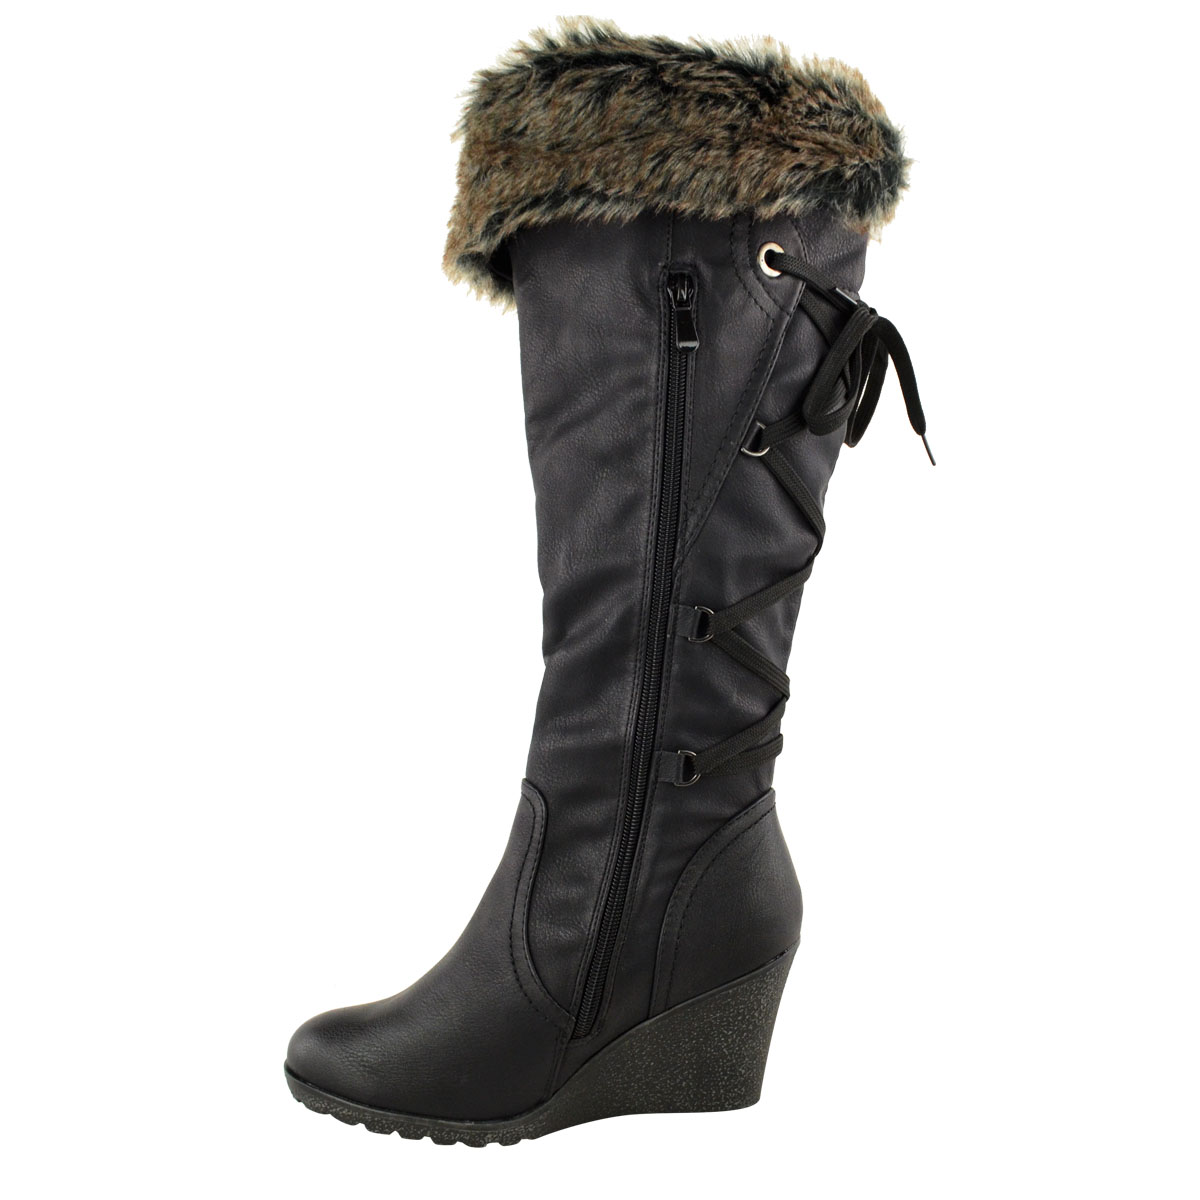 0bc175c6989 Details about Womens Ladies Mid Wedge High Heel Fur Lined Winter Warm Knee  Calf Zip Boots Size